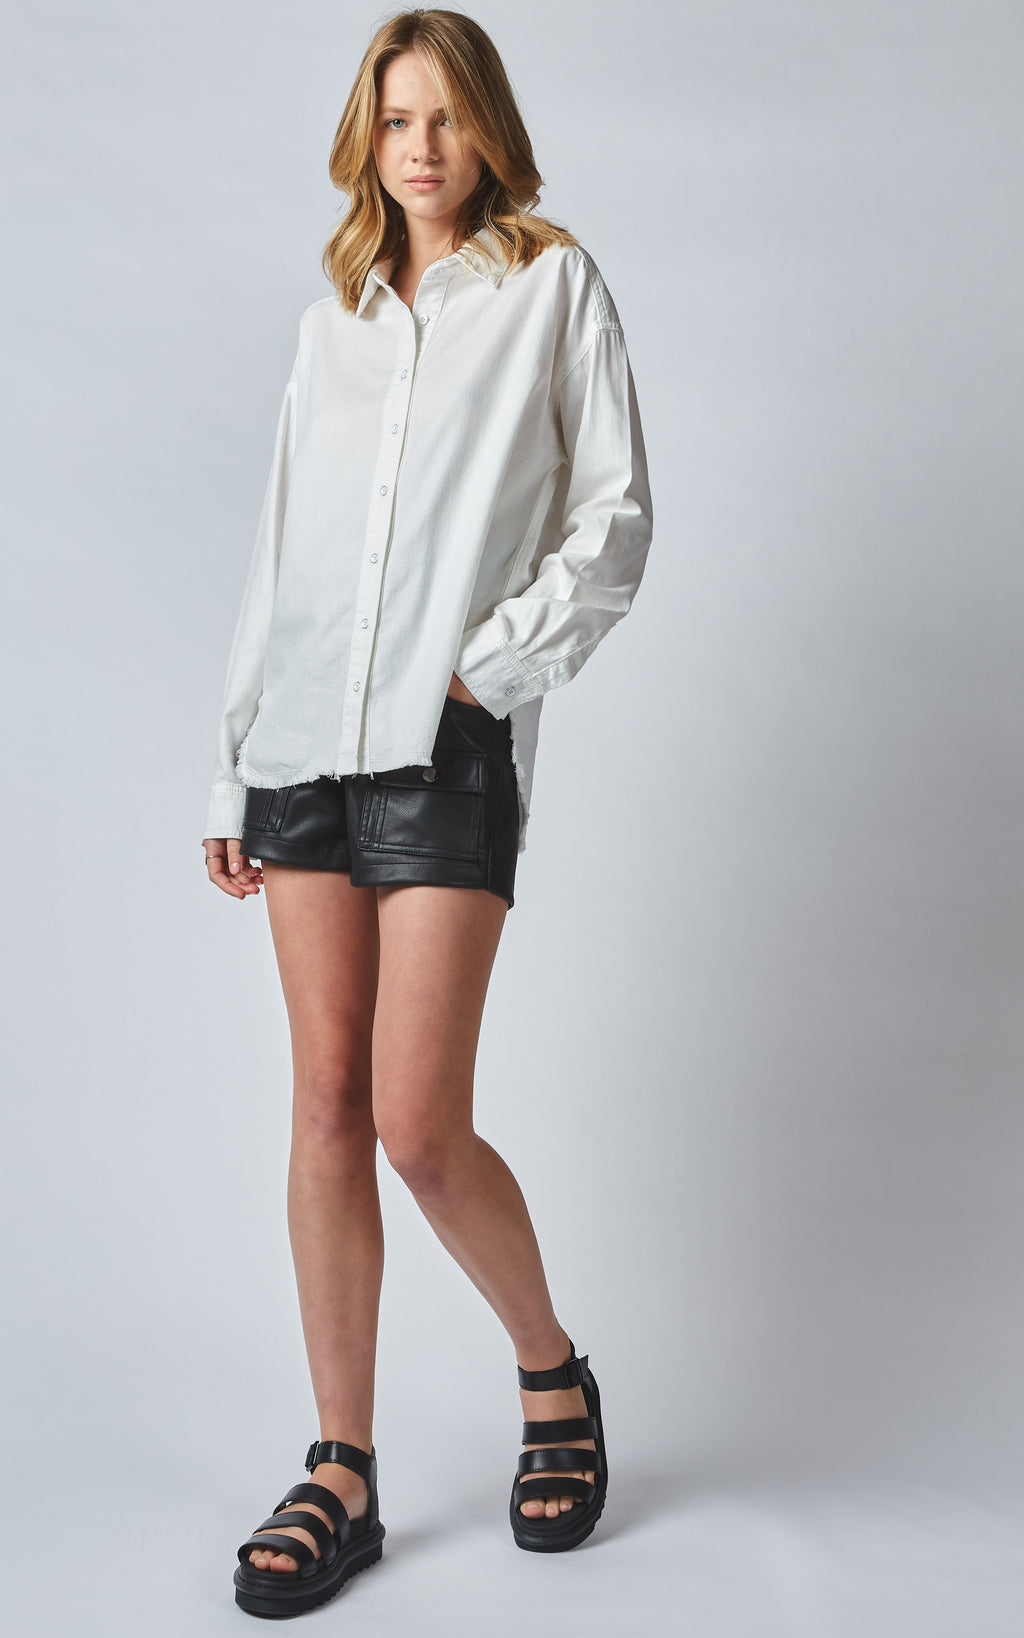 TAHITI WHITE LINEN DENIM SHIRT